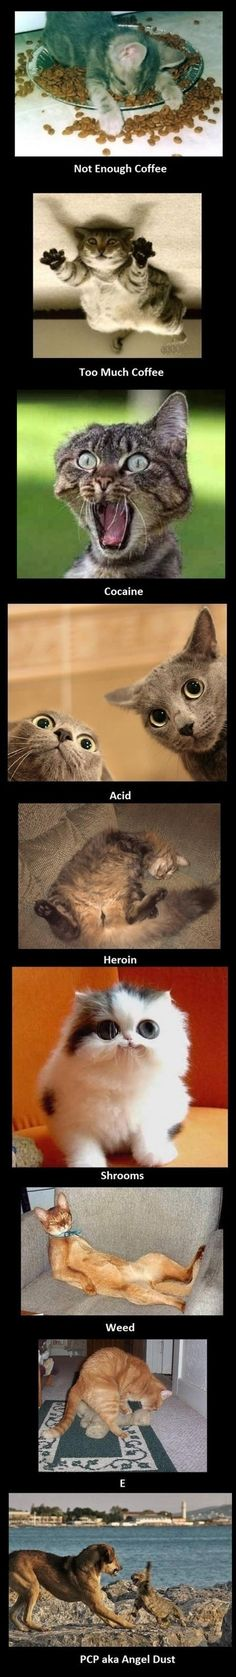 Cats on drugs. #WhyILoveCats